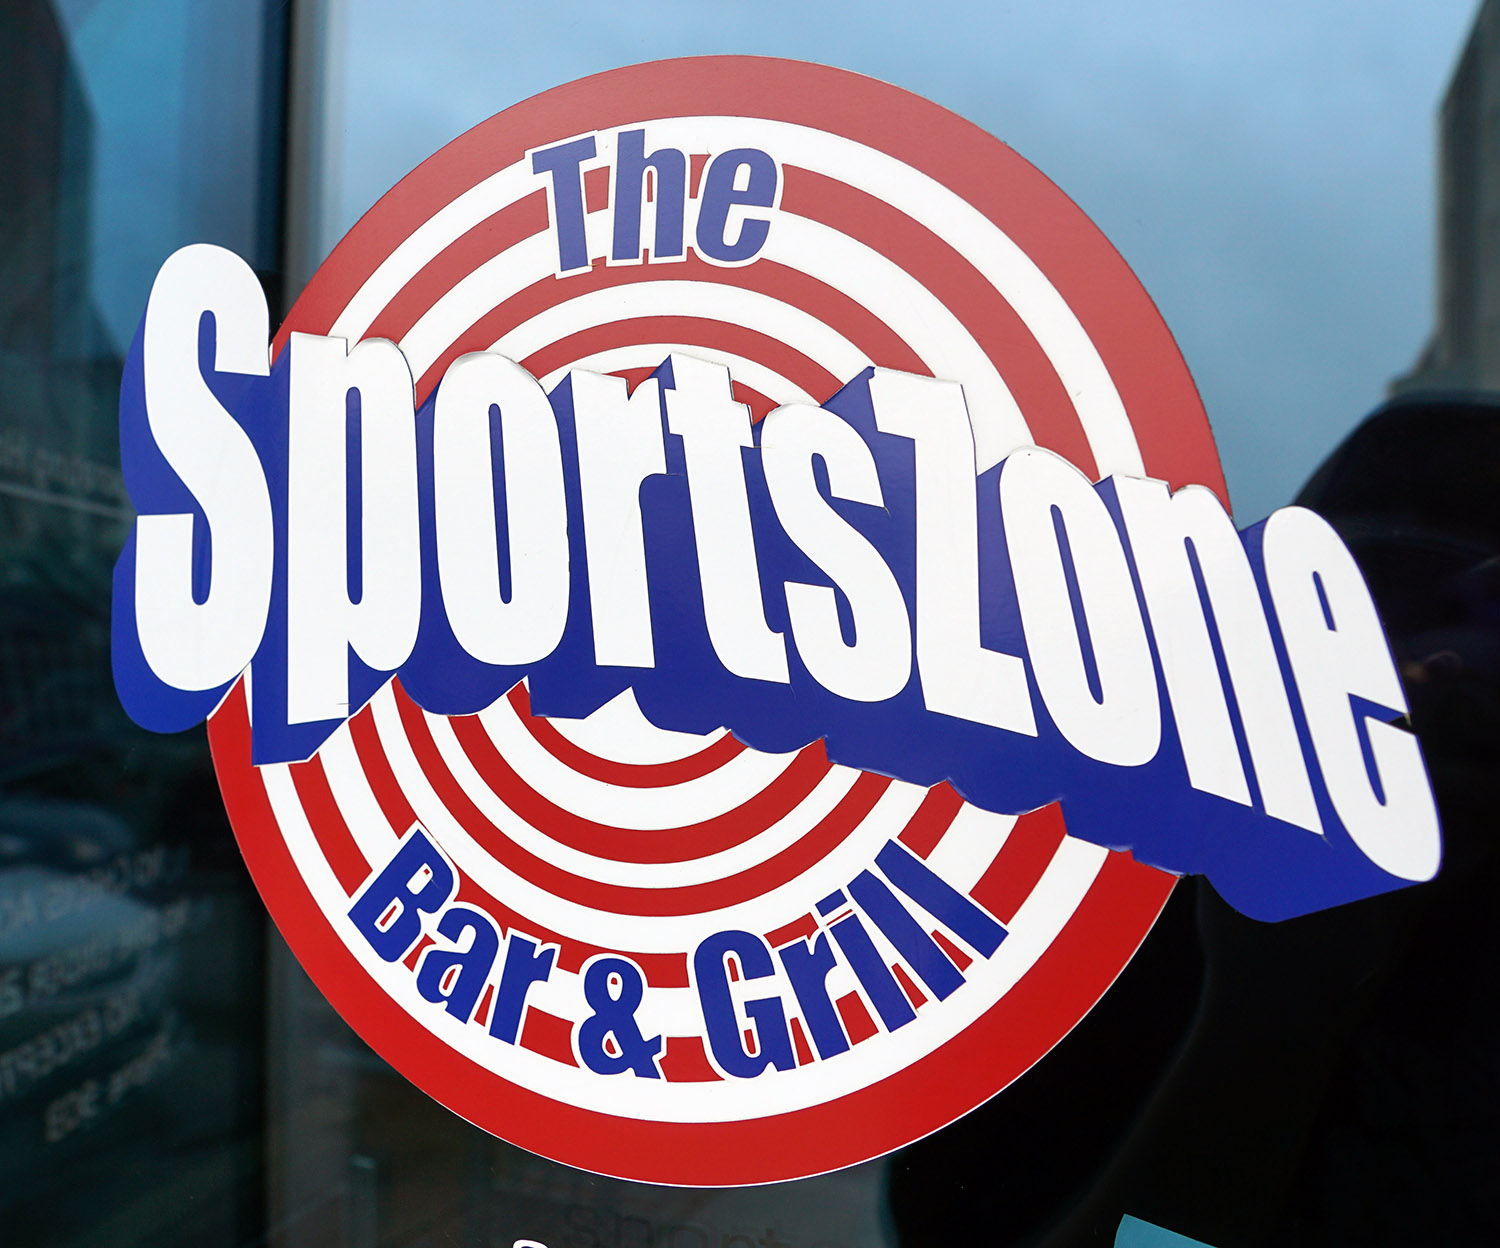 SportsZone is an institution. - Located in the heart of Downtown Tyler, Texas, SportsZone is the area's premier destination for great drinks, great food and a lively atmosphere. SportsZone opened in 2003 and has been a vital part of Tyler's night life for 15 years.Managing partner Josh Collins took the reins at SportsZone in August of 2016 and has worked to maintain SportsZone's reputation as Tyler's best sports bar but also has launched a revamped food menu.SportsZone features 10 local, domestic and imported beers on tap, dozens more options by the bottle or can, a vast offering of liquors and a dozen big screen TVs. 'We'll see you downtown soon. Cheers!